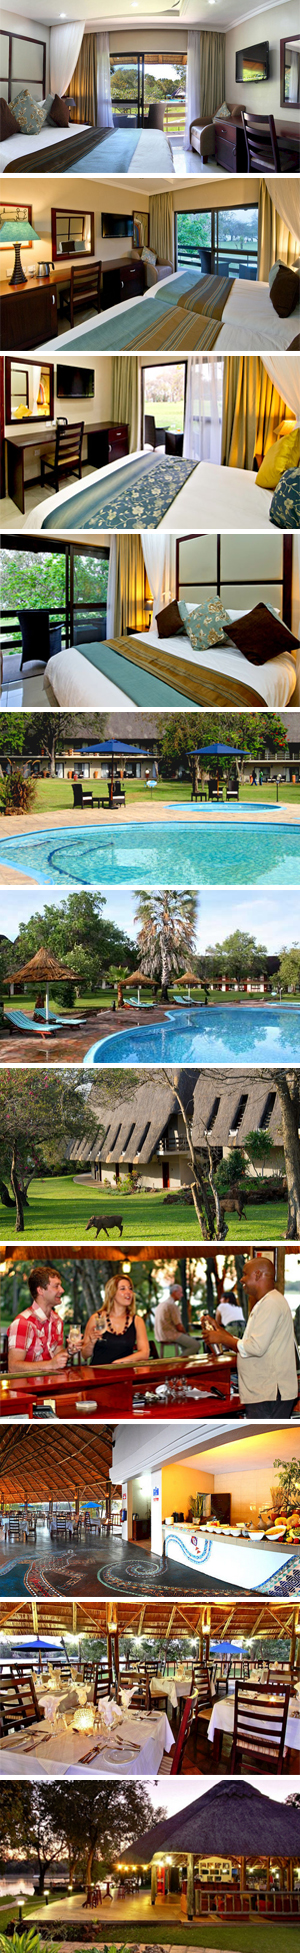 A'Zambezi River Lodge Pics